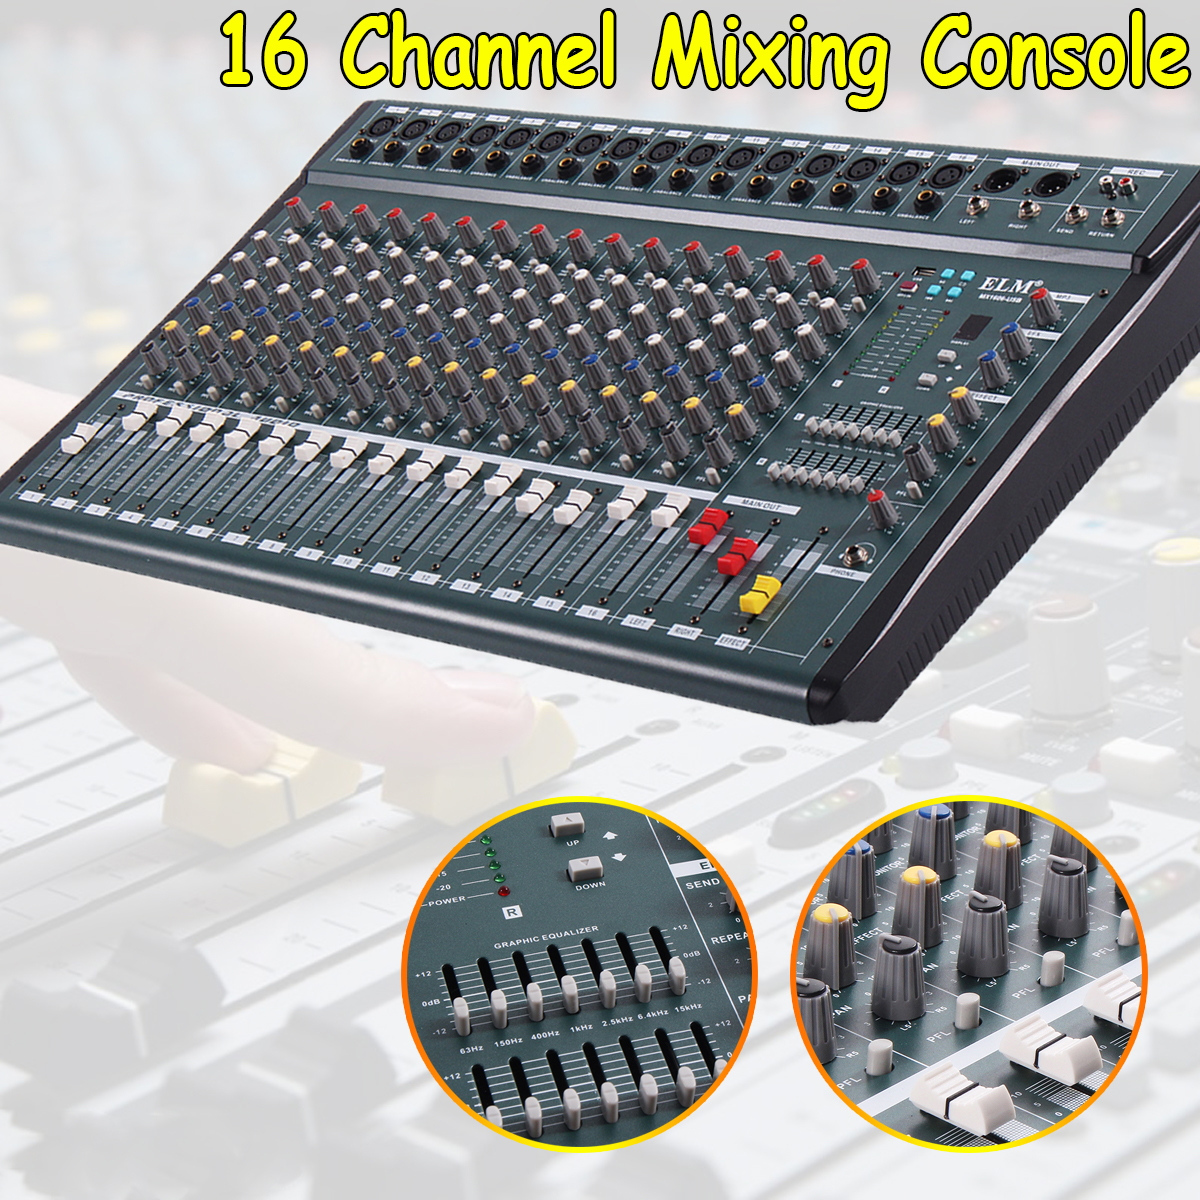 16 Channel 110V-220V Karaoke Audio Mixer Amplifier Mini Microphone Sound Mixing Console With USB Phantom Power leory mini karaoke audio mixer 4 channel microphone digital sound mixing amplifier console built in 48v phantom power with usb